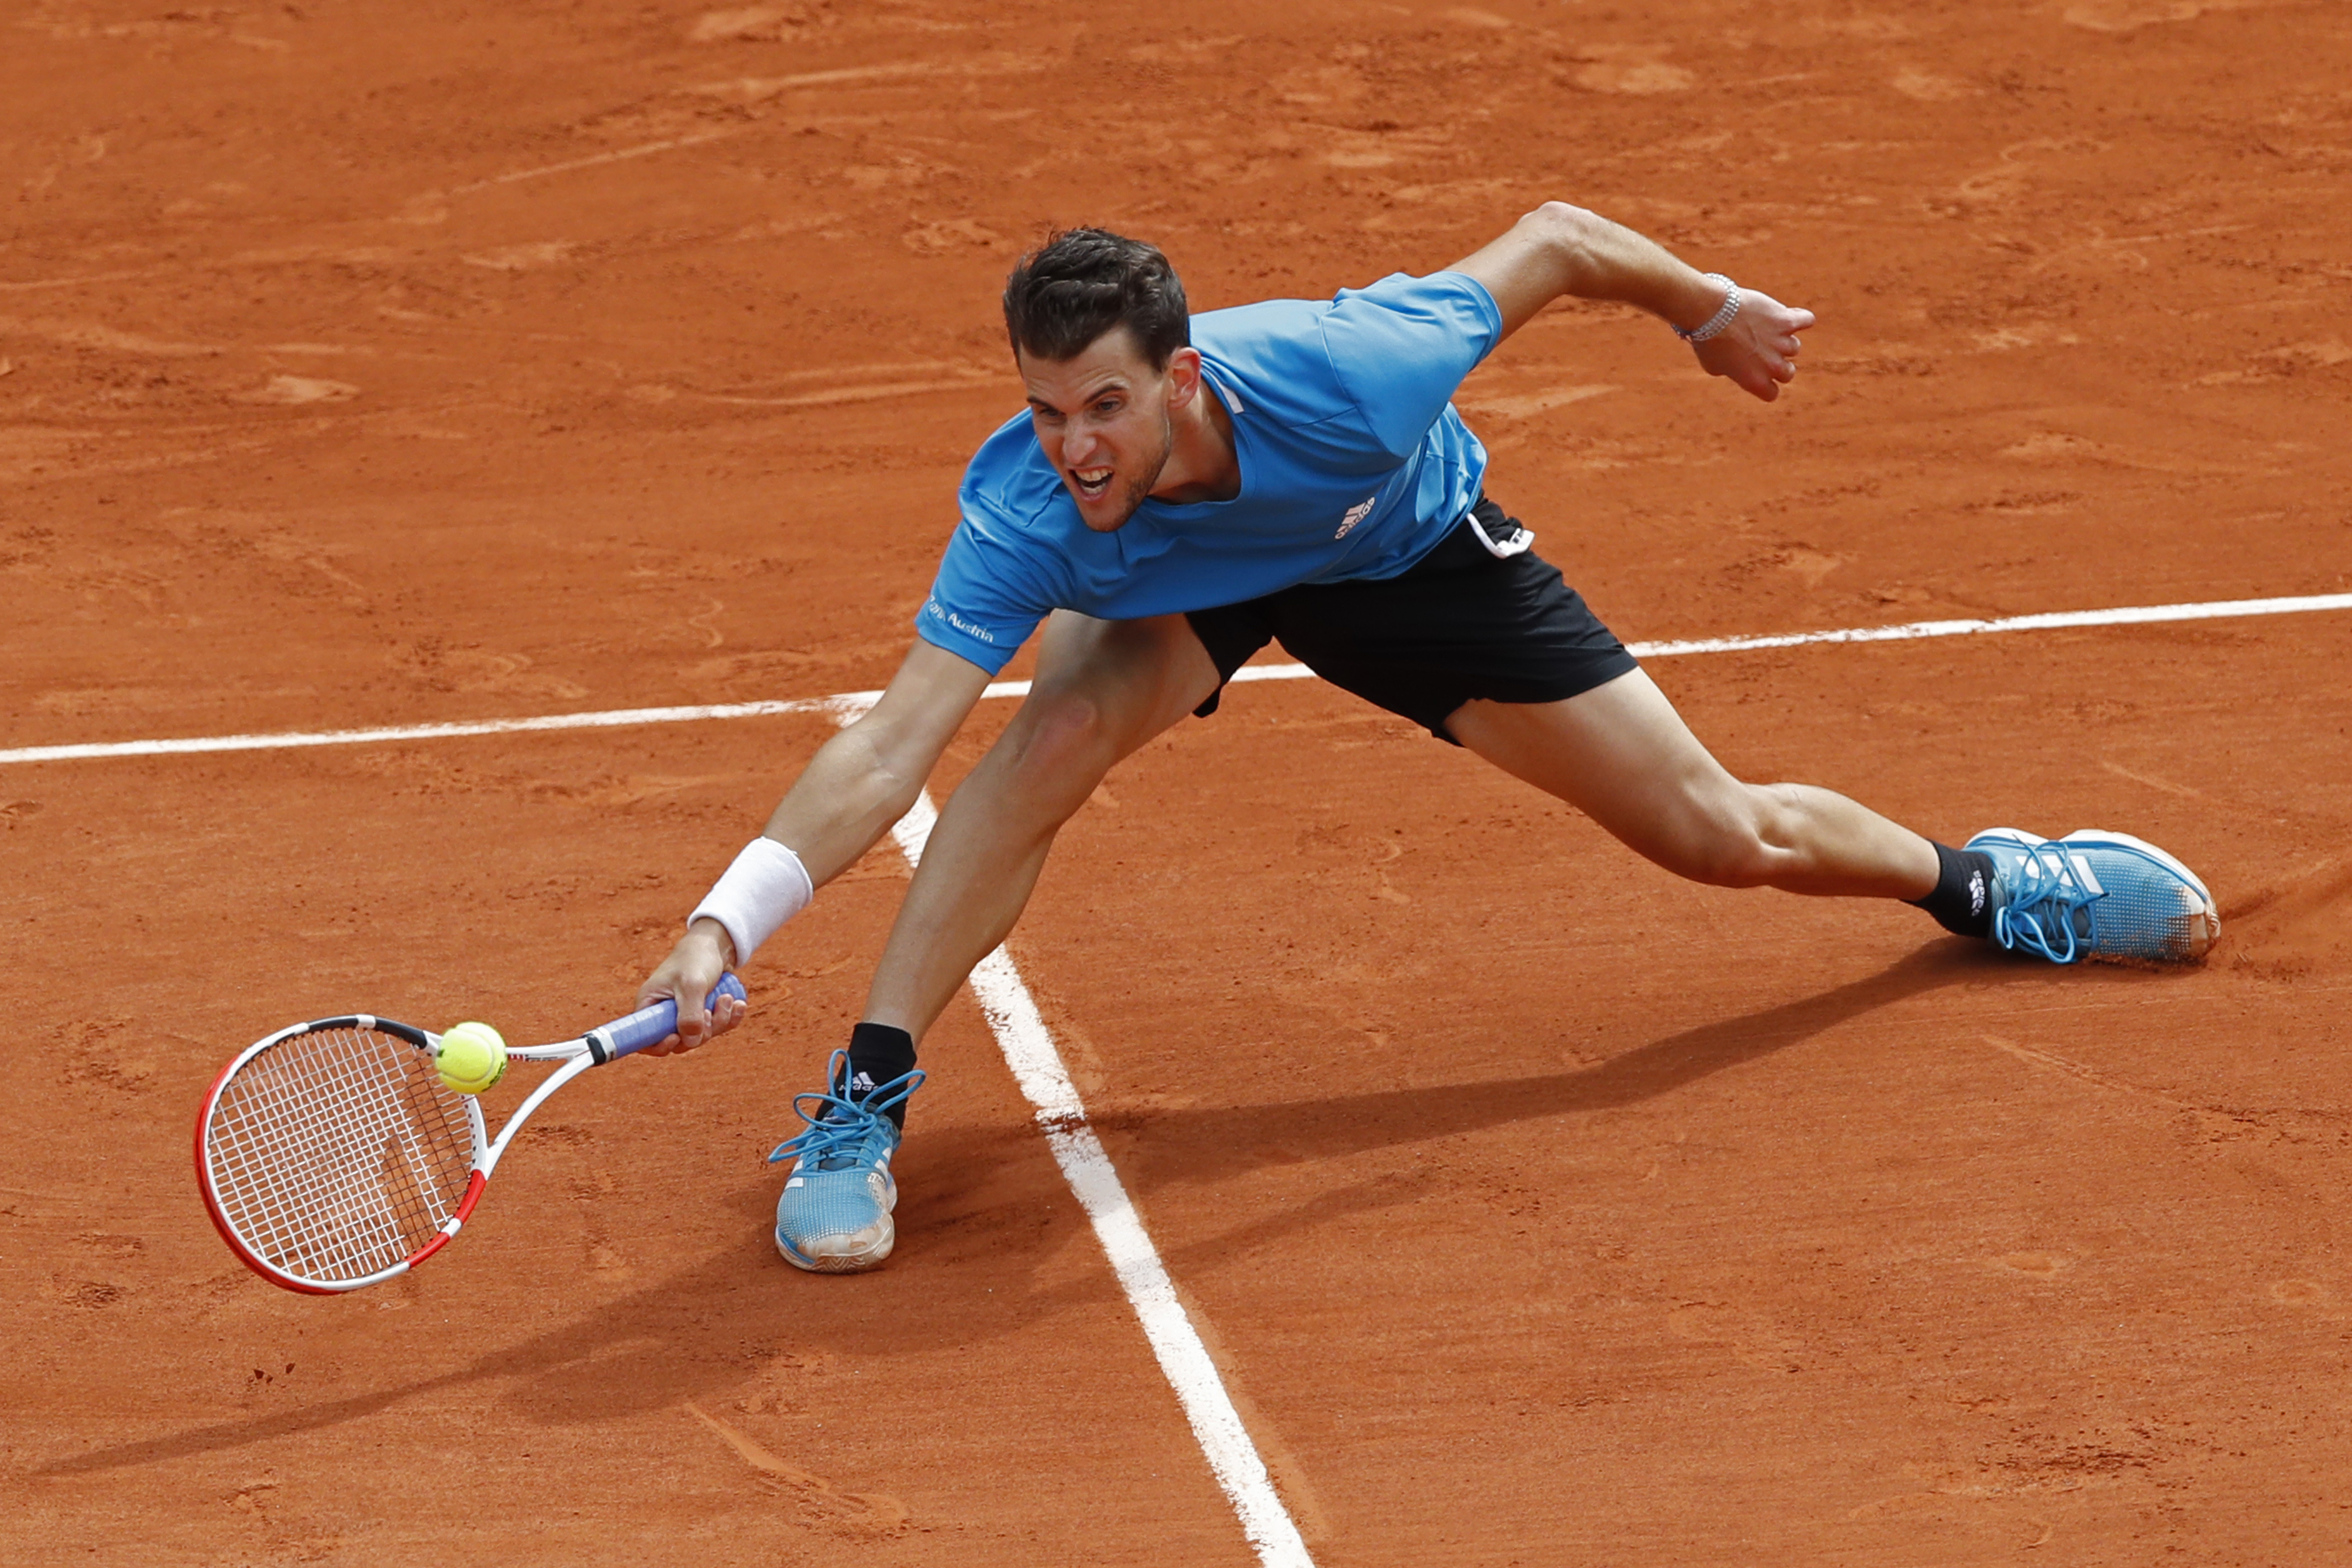 Thiem worked hard but was no match for Nadal. Image: PA Images